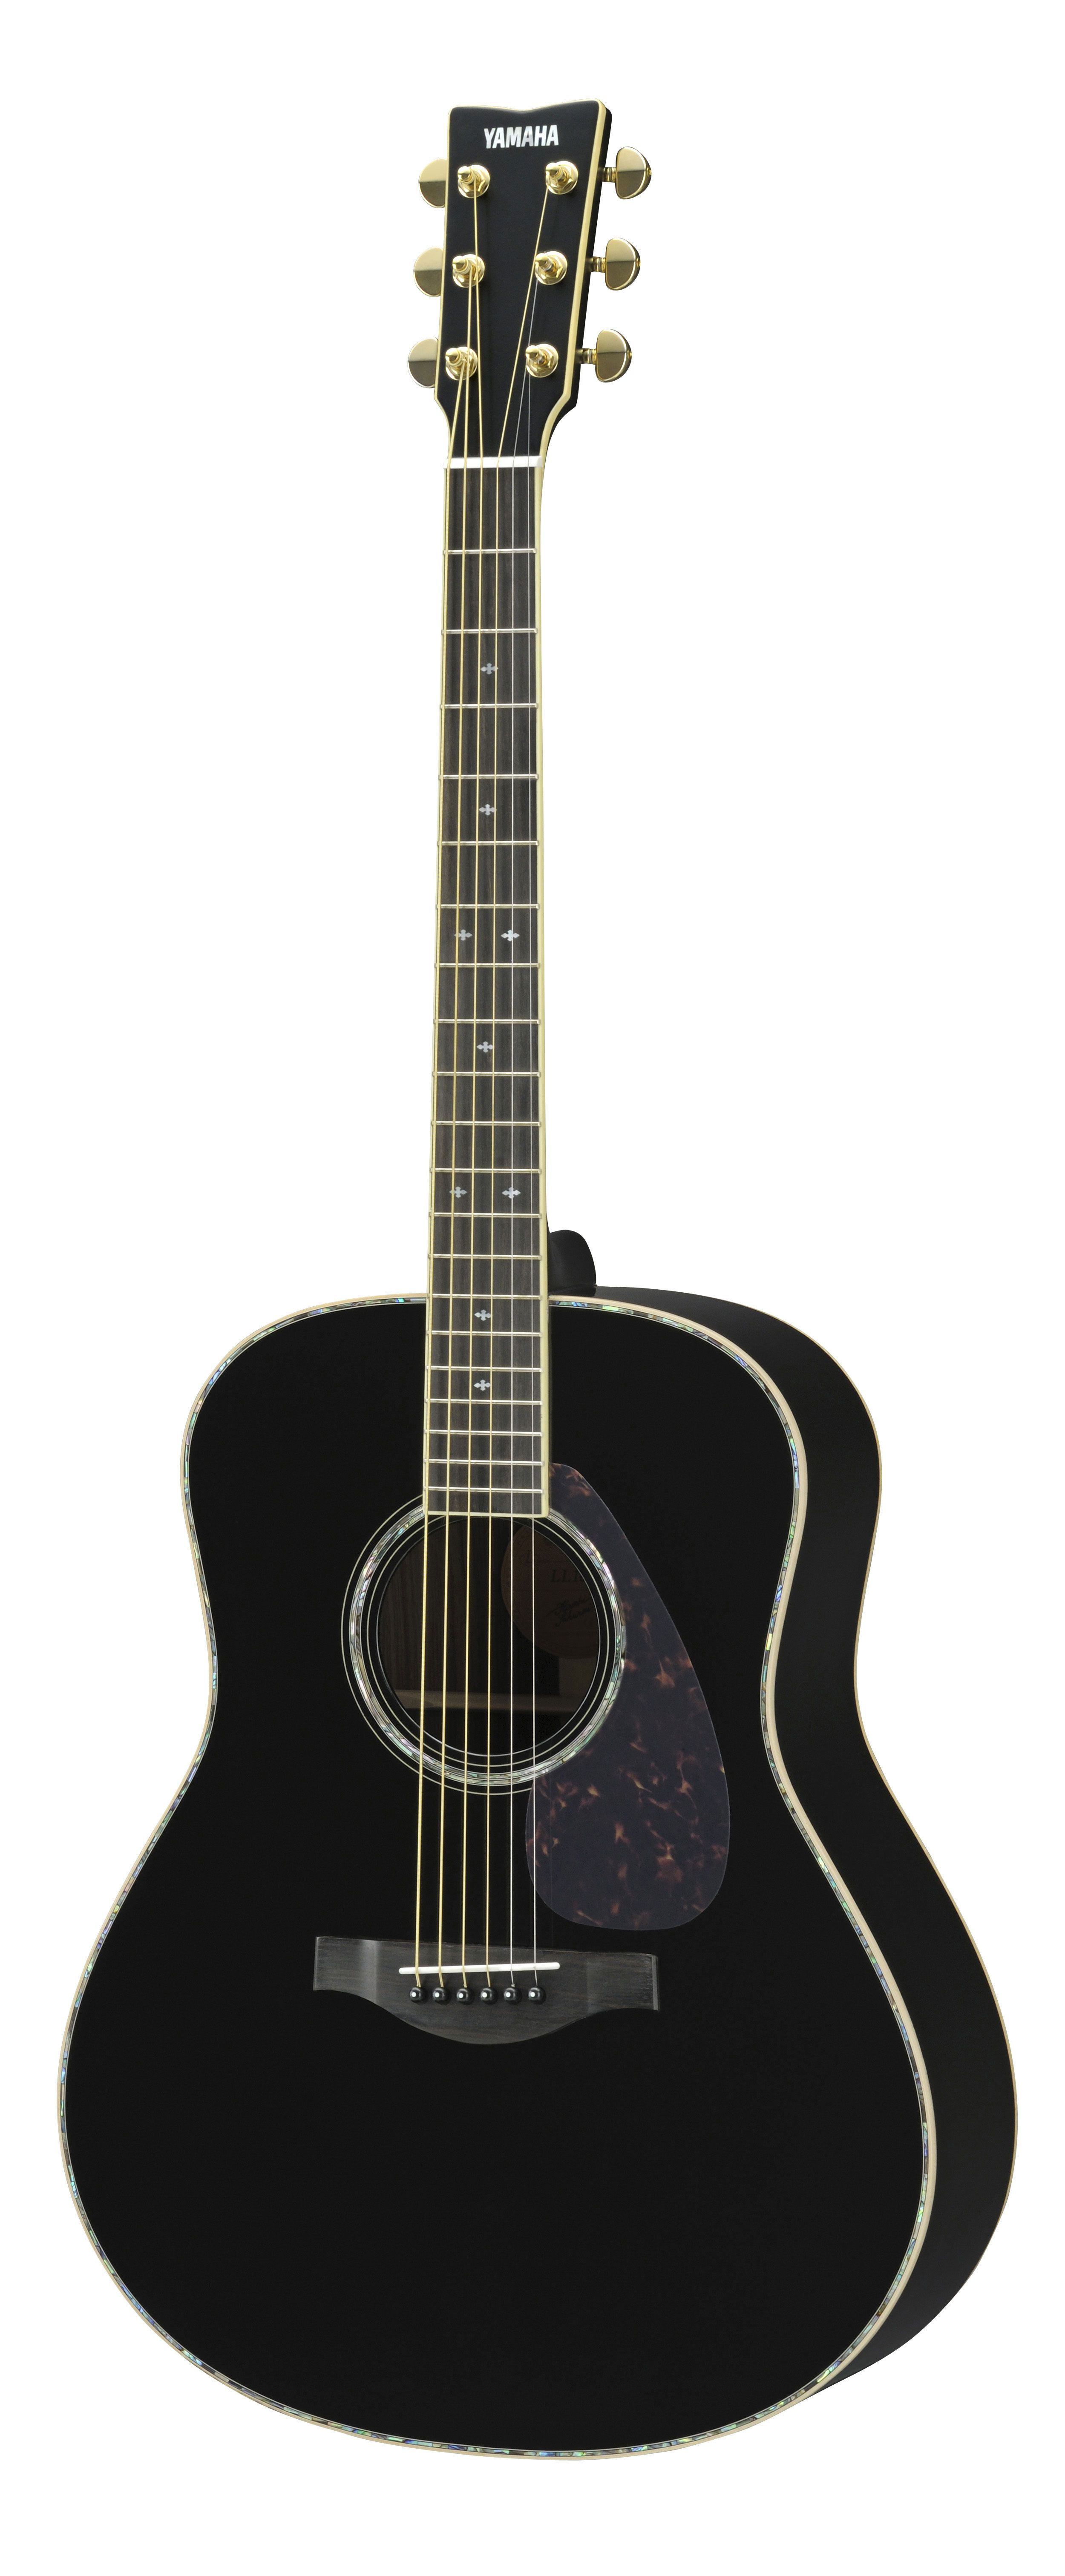 Yamaha Ll16d Are Black Could Be My Next Guitar Black Acoustic Guitar Acoustic Guitar Acoustic Electric Guitar